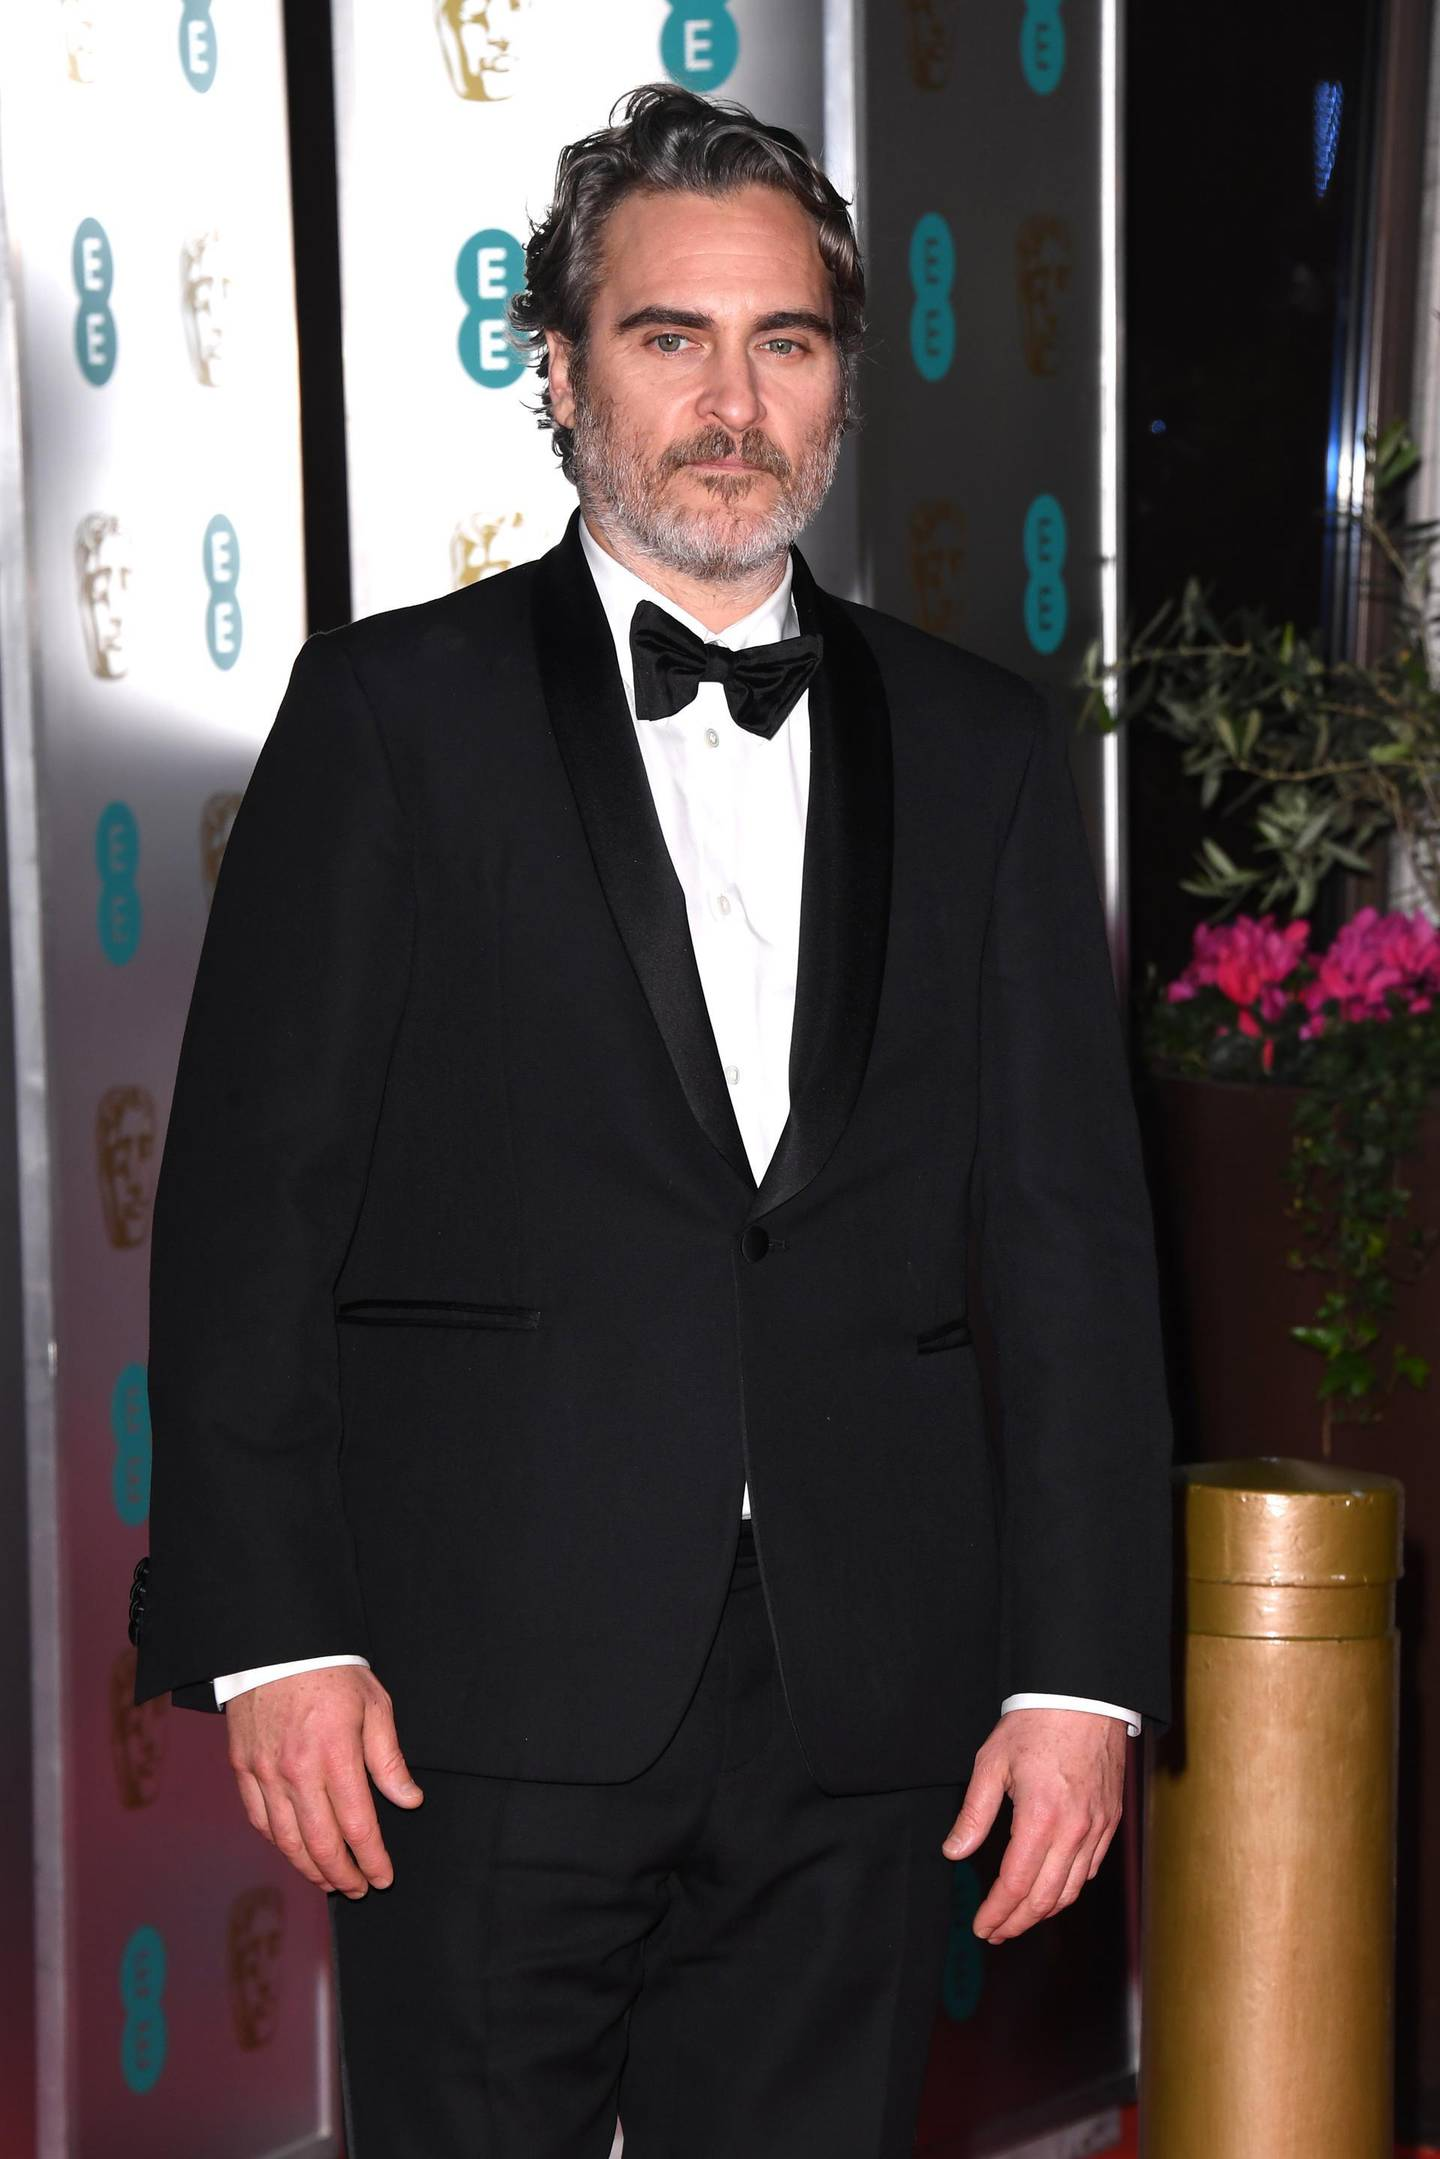 LONDON, ENGLAND - FEBRUARY 02: Joaquin Phoenix attends the EE British Academy Film Awards 2020 After Party at The Grosvenor House Hotel on February 02, 2020 in London, England. (Photo by Stuart C. Wilson/Getty Images)